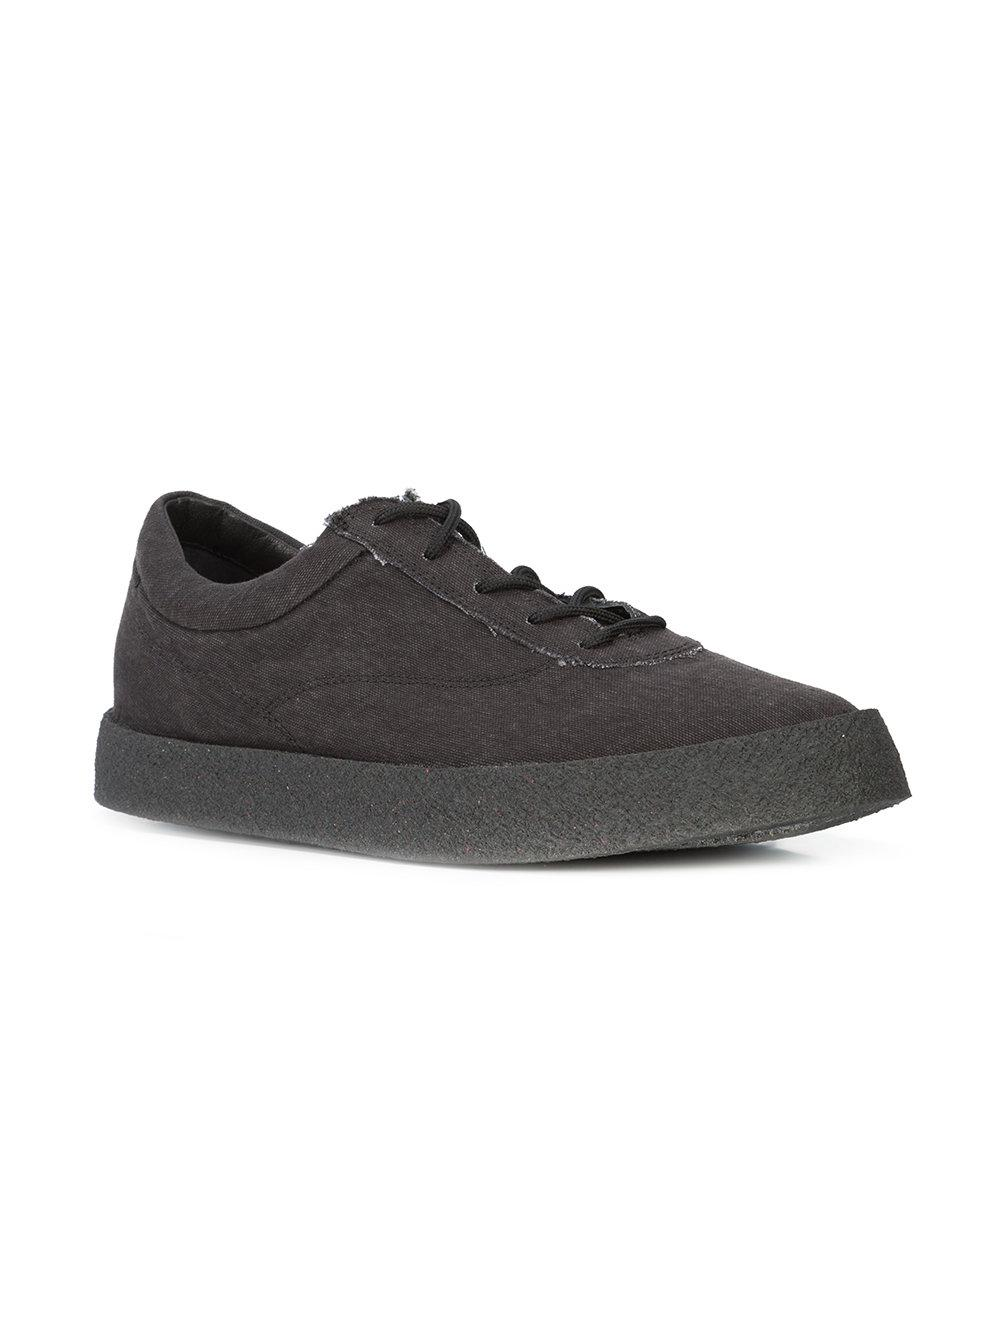 76c08f4bb68 Lyst - Yeezy Season 6 Washed Sneakers in Black for Men - Save 20%